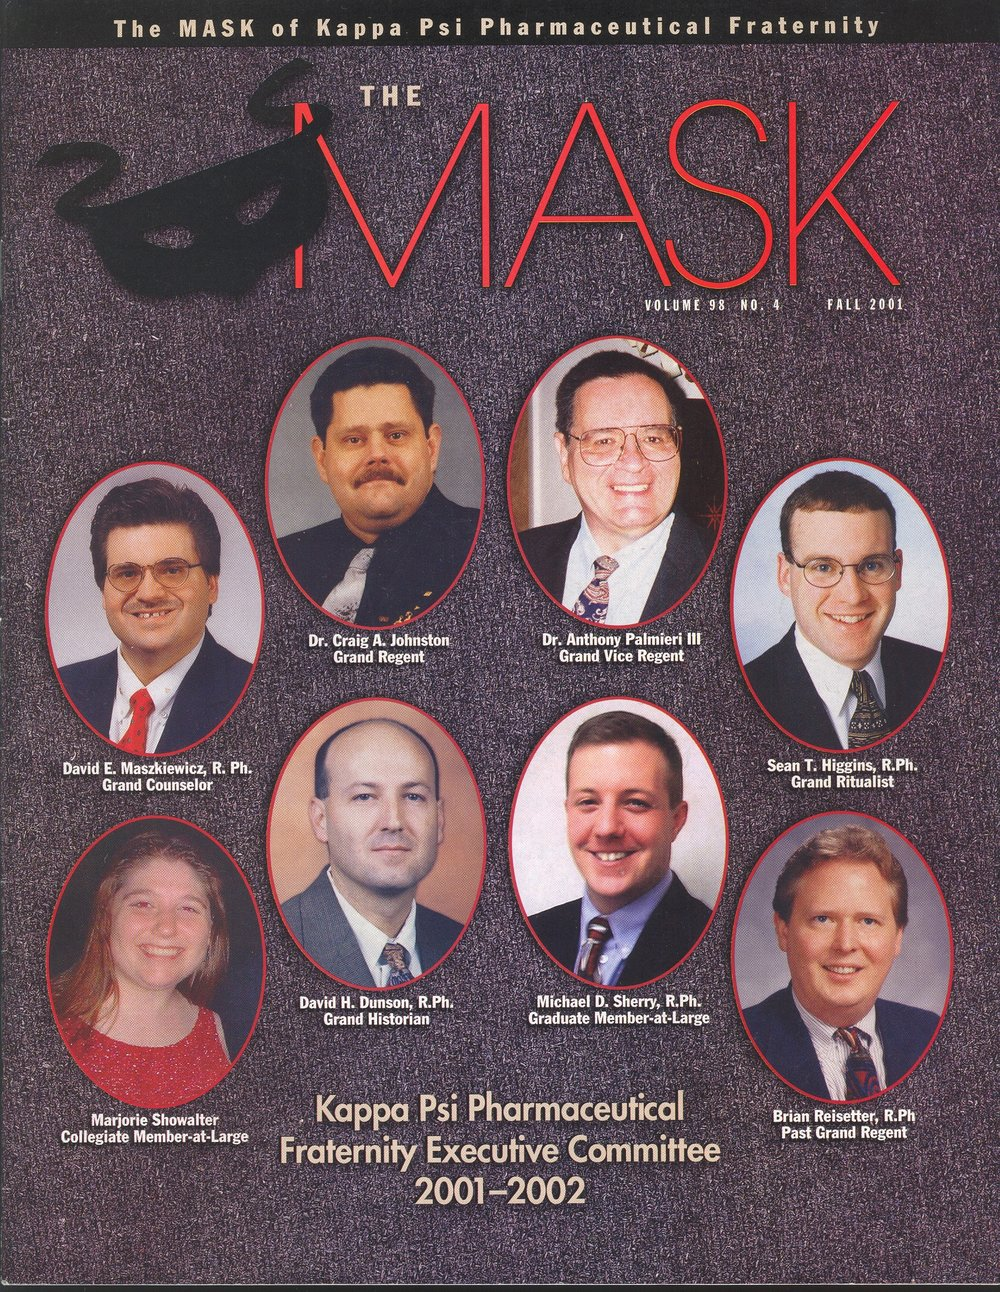 mask_cover_98-4_2001_fall.jpg